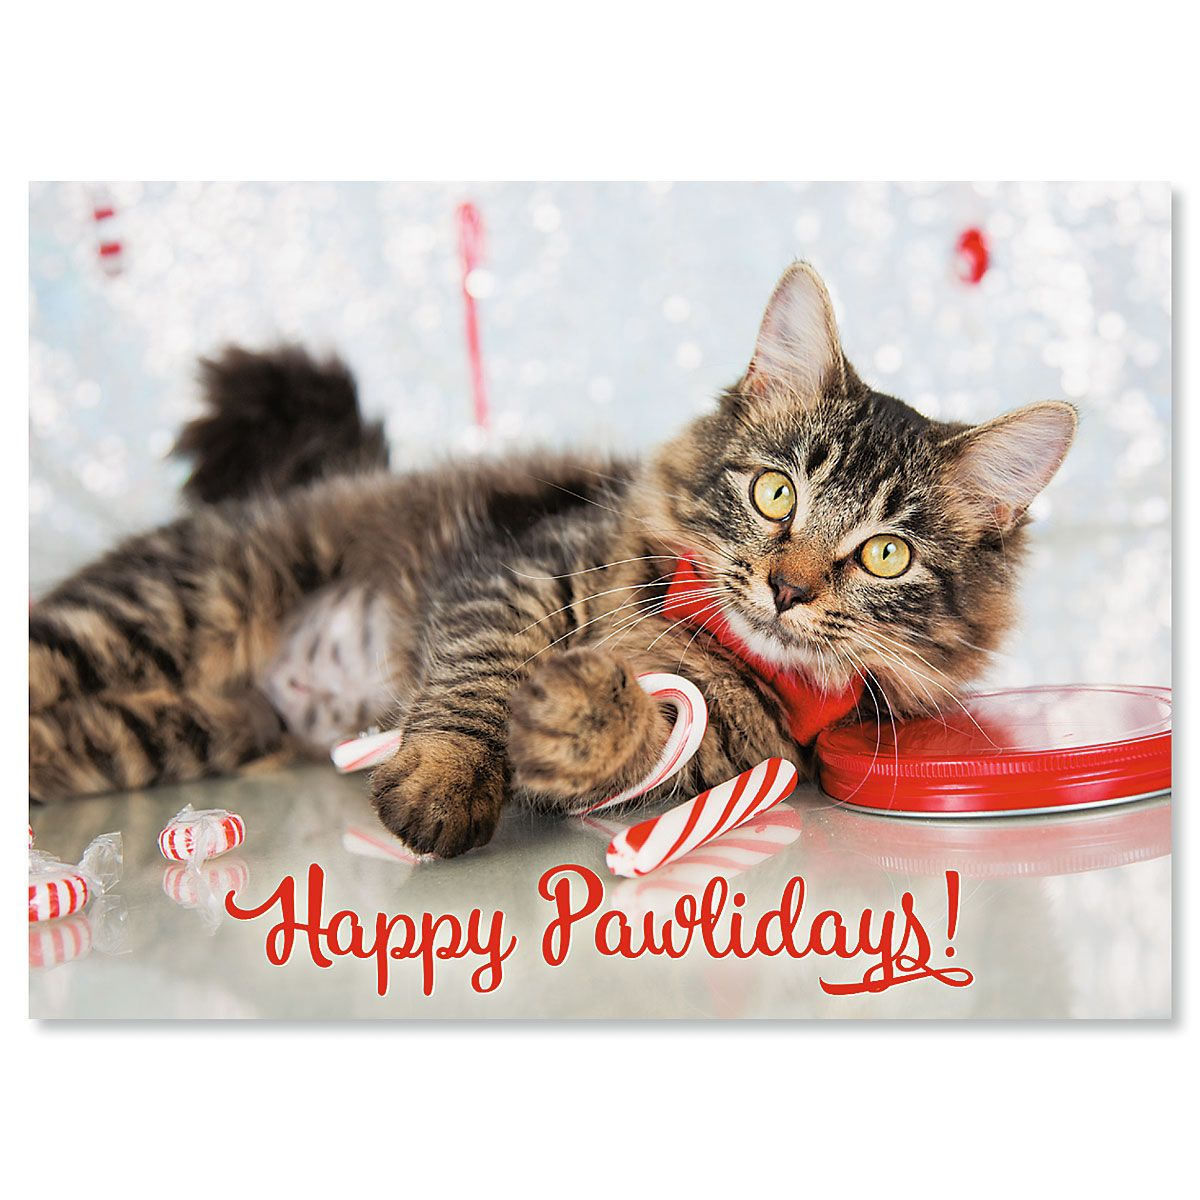 Happy Pawlidays Personalized Christmas Cards - Set of 72